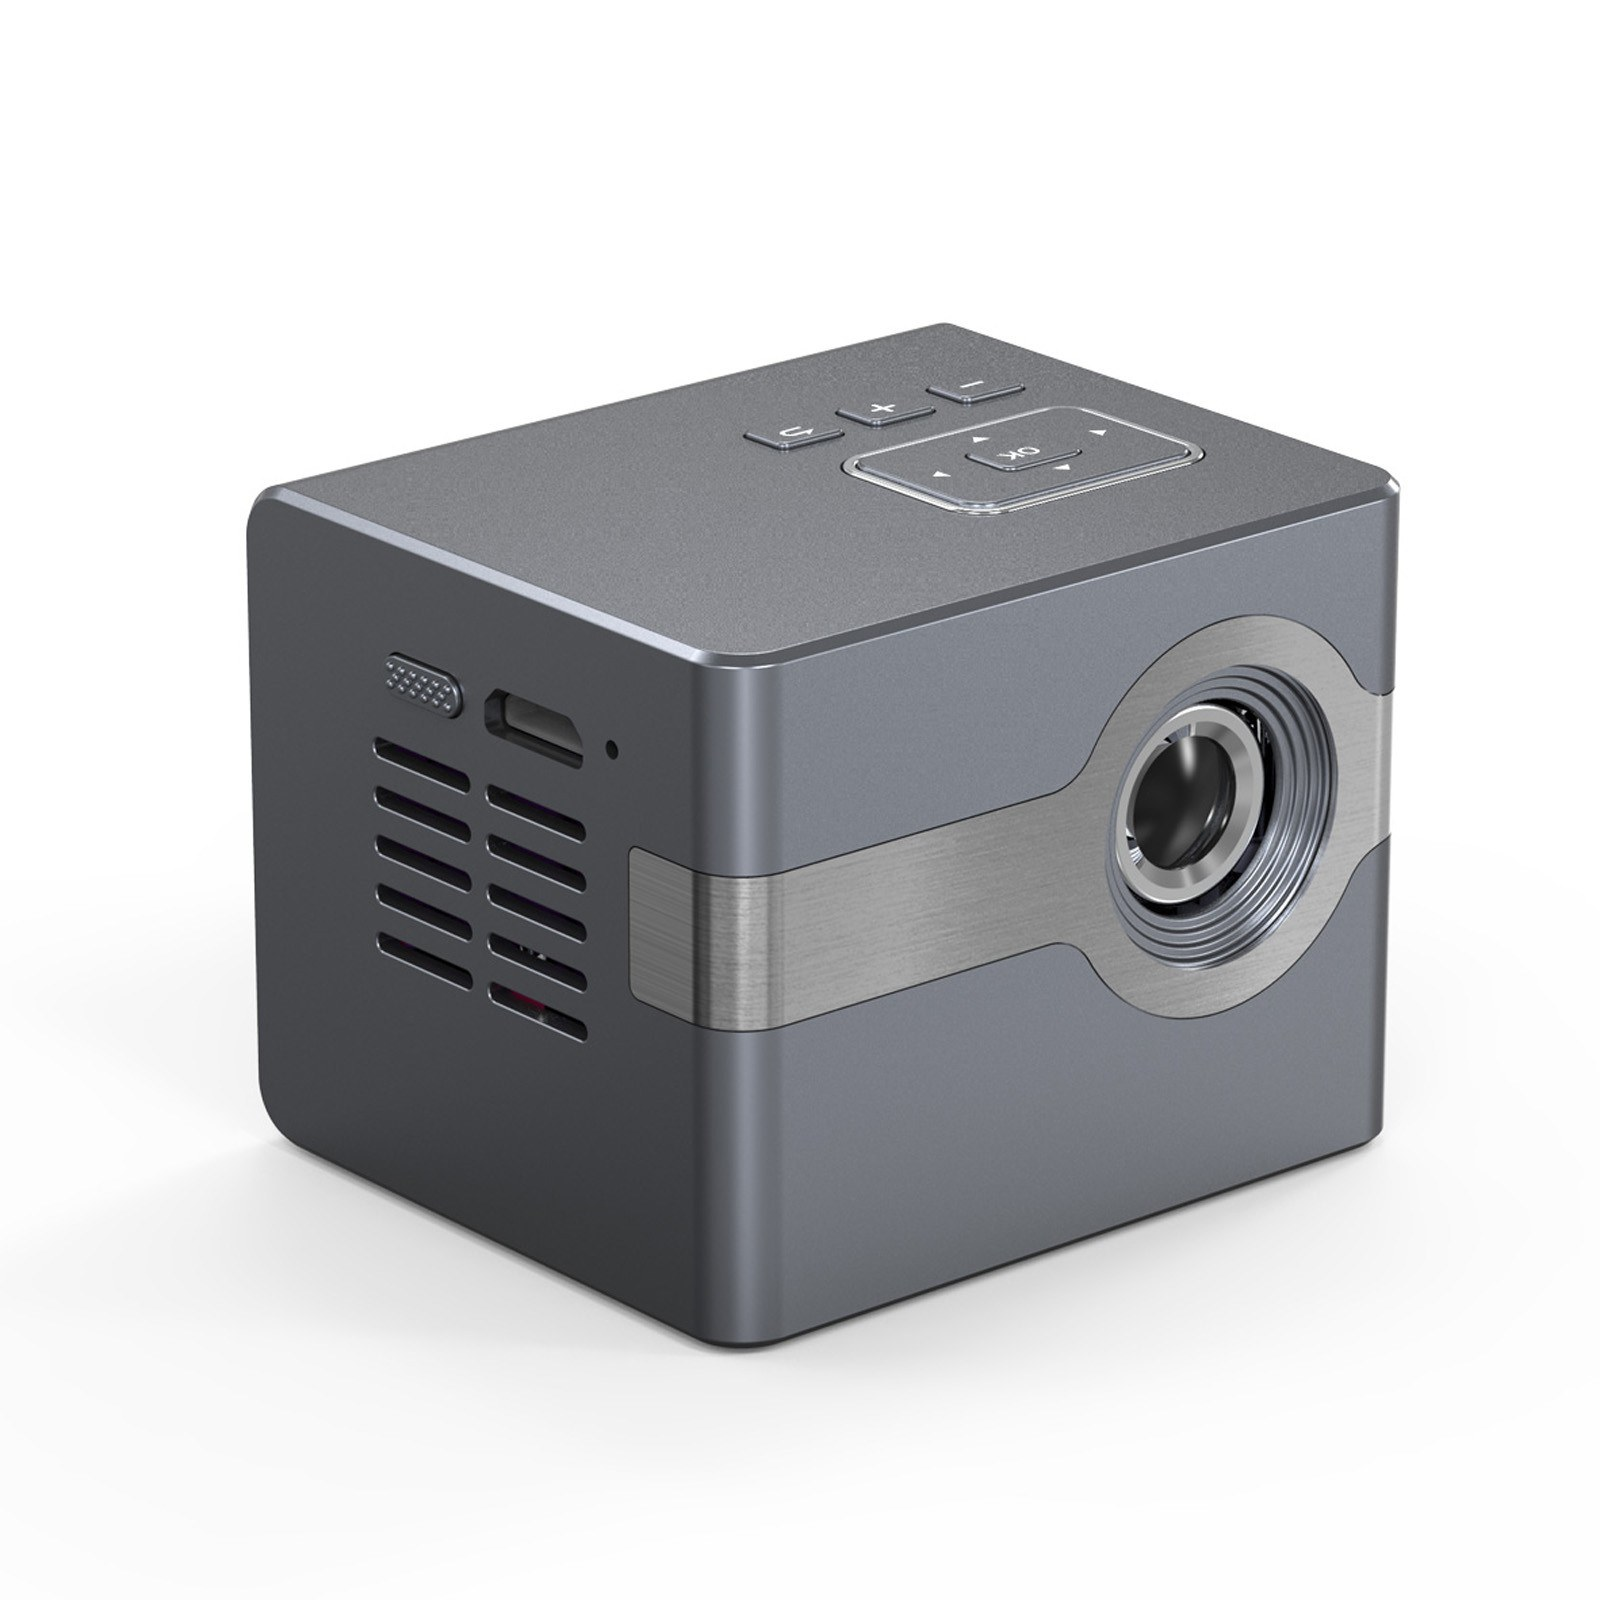 Tomtop - 34% OFF C50 Mini DLP Projector Portable Home Theater Projector, Free Shipping $125.99